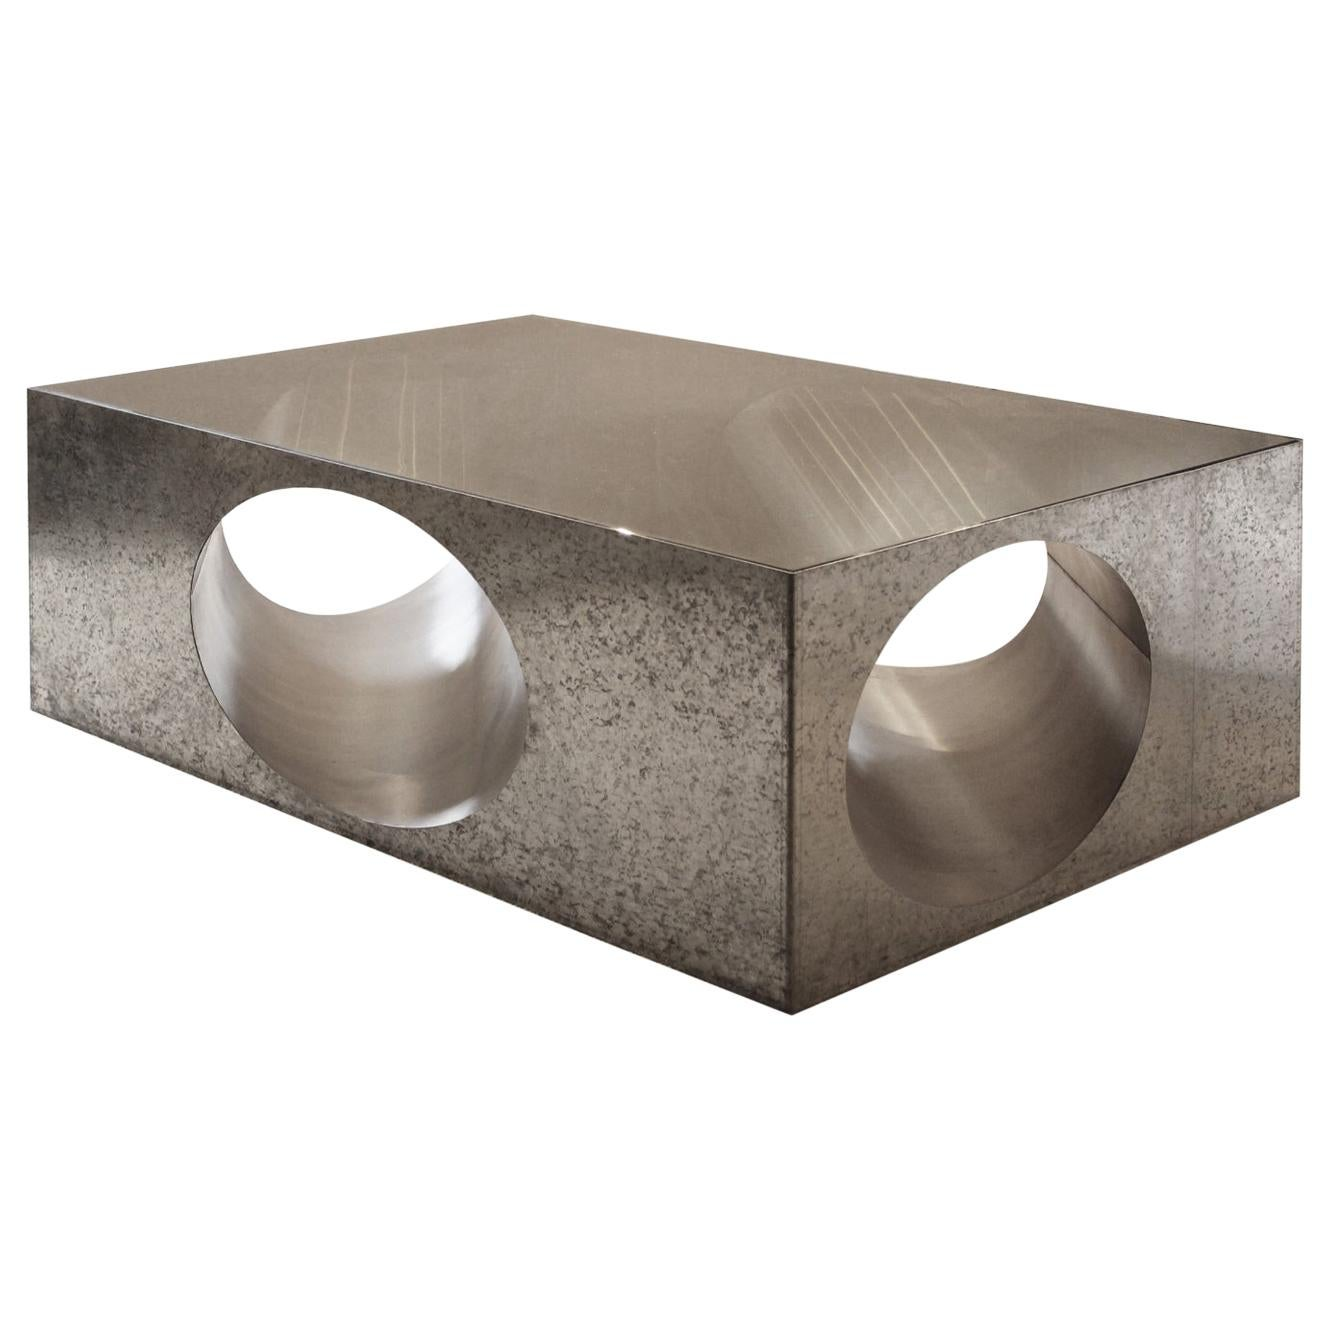 Hol-Low Table by Christian Zahr